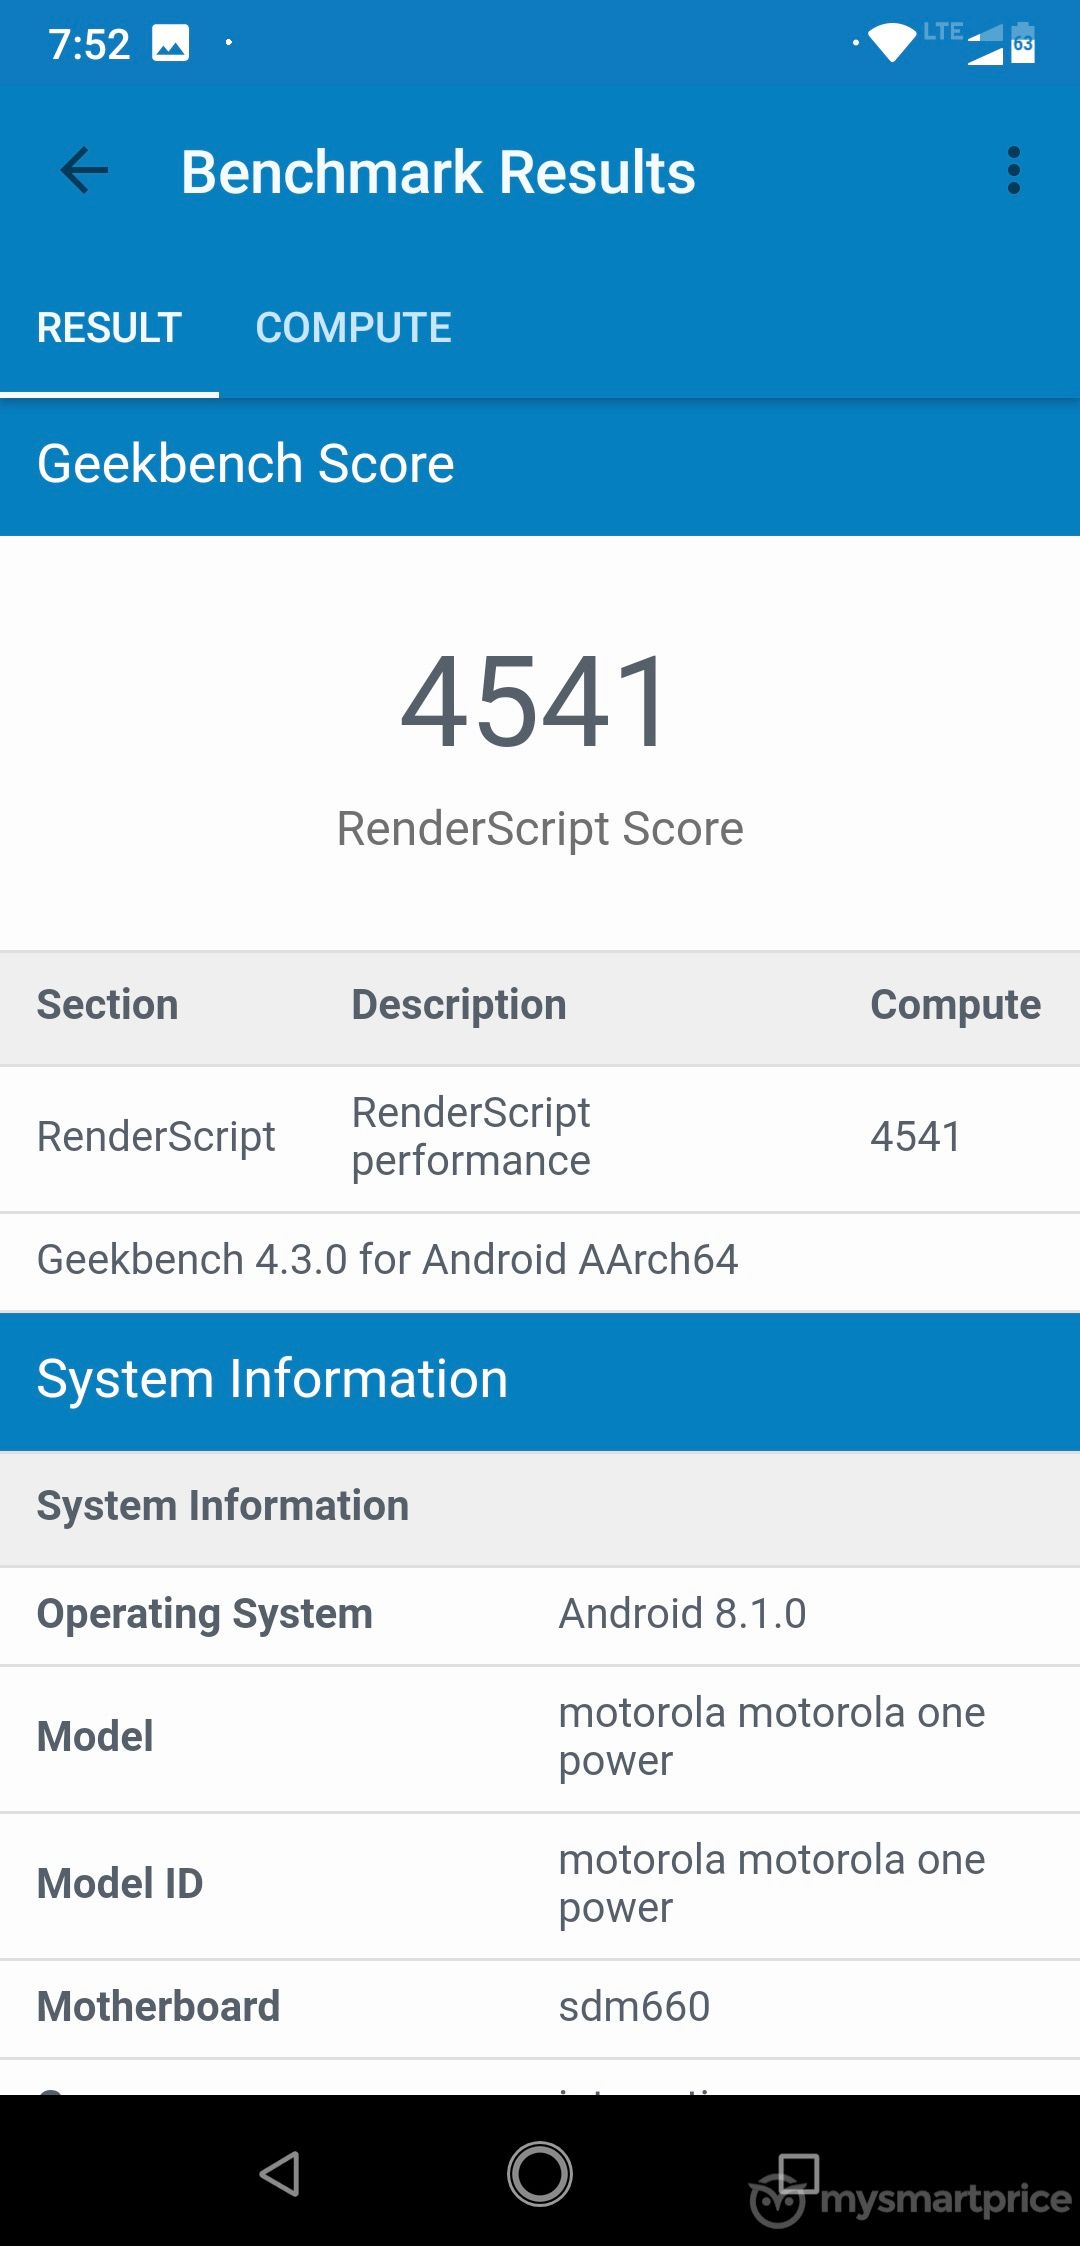 Motorola Moto One Power GeekBench - Compute Benchmark